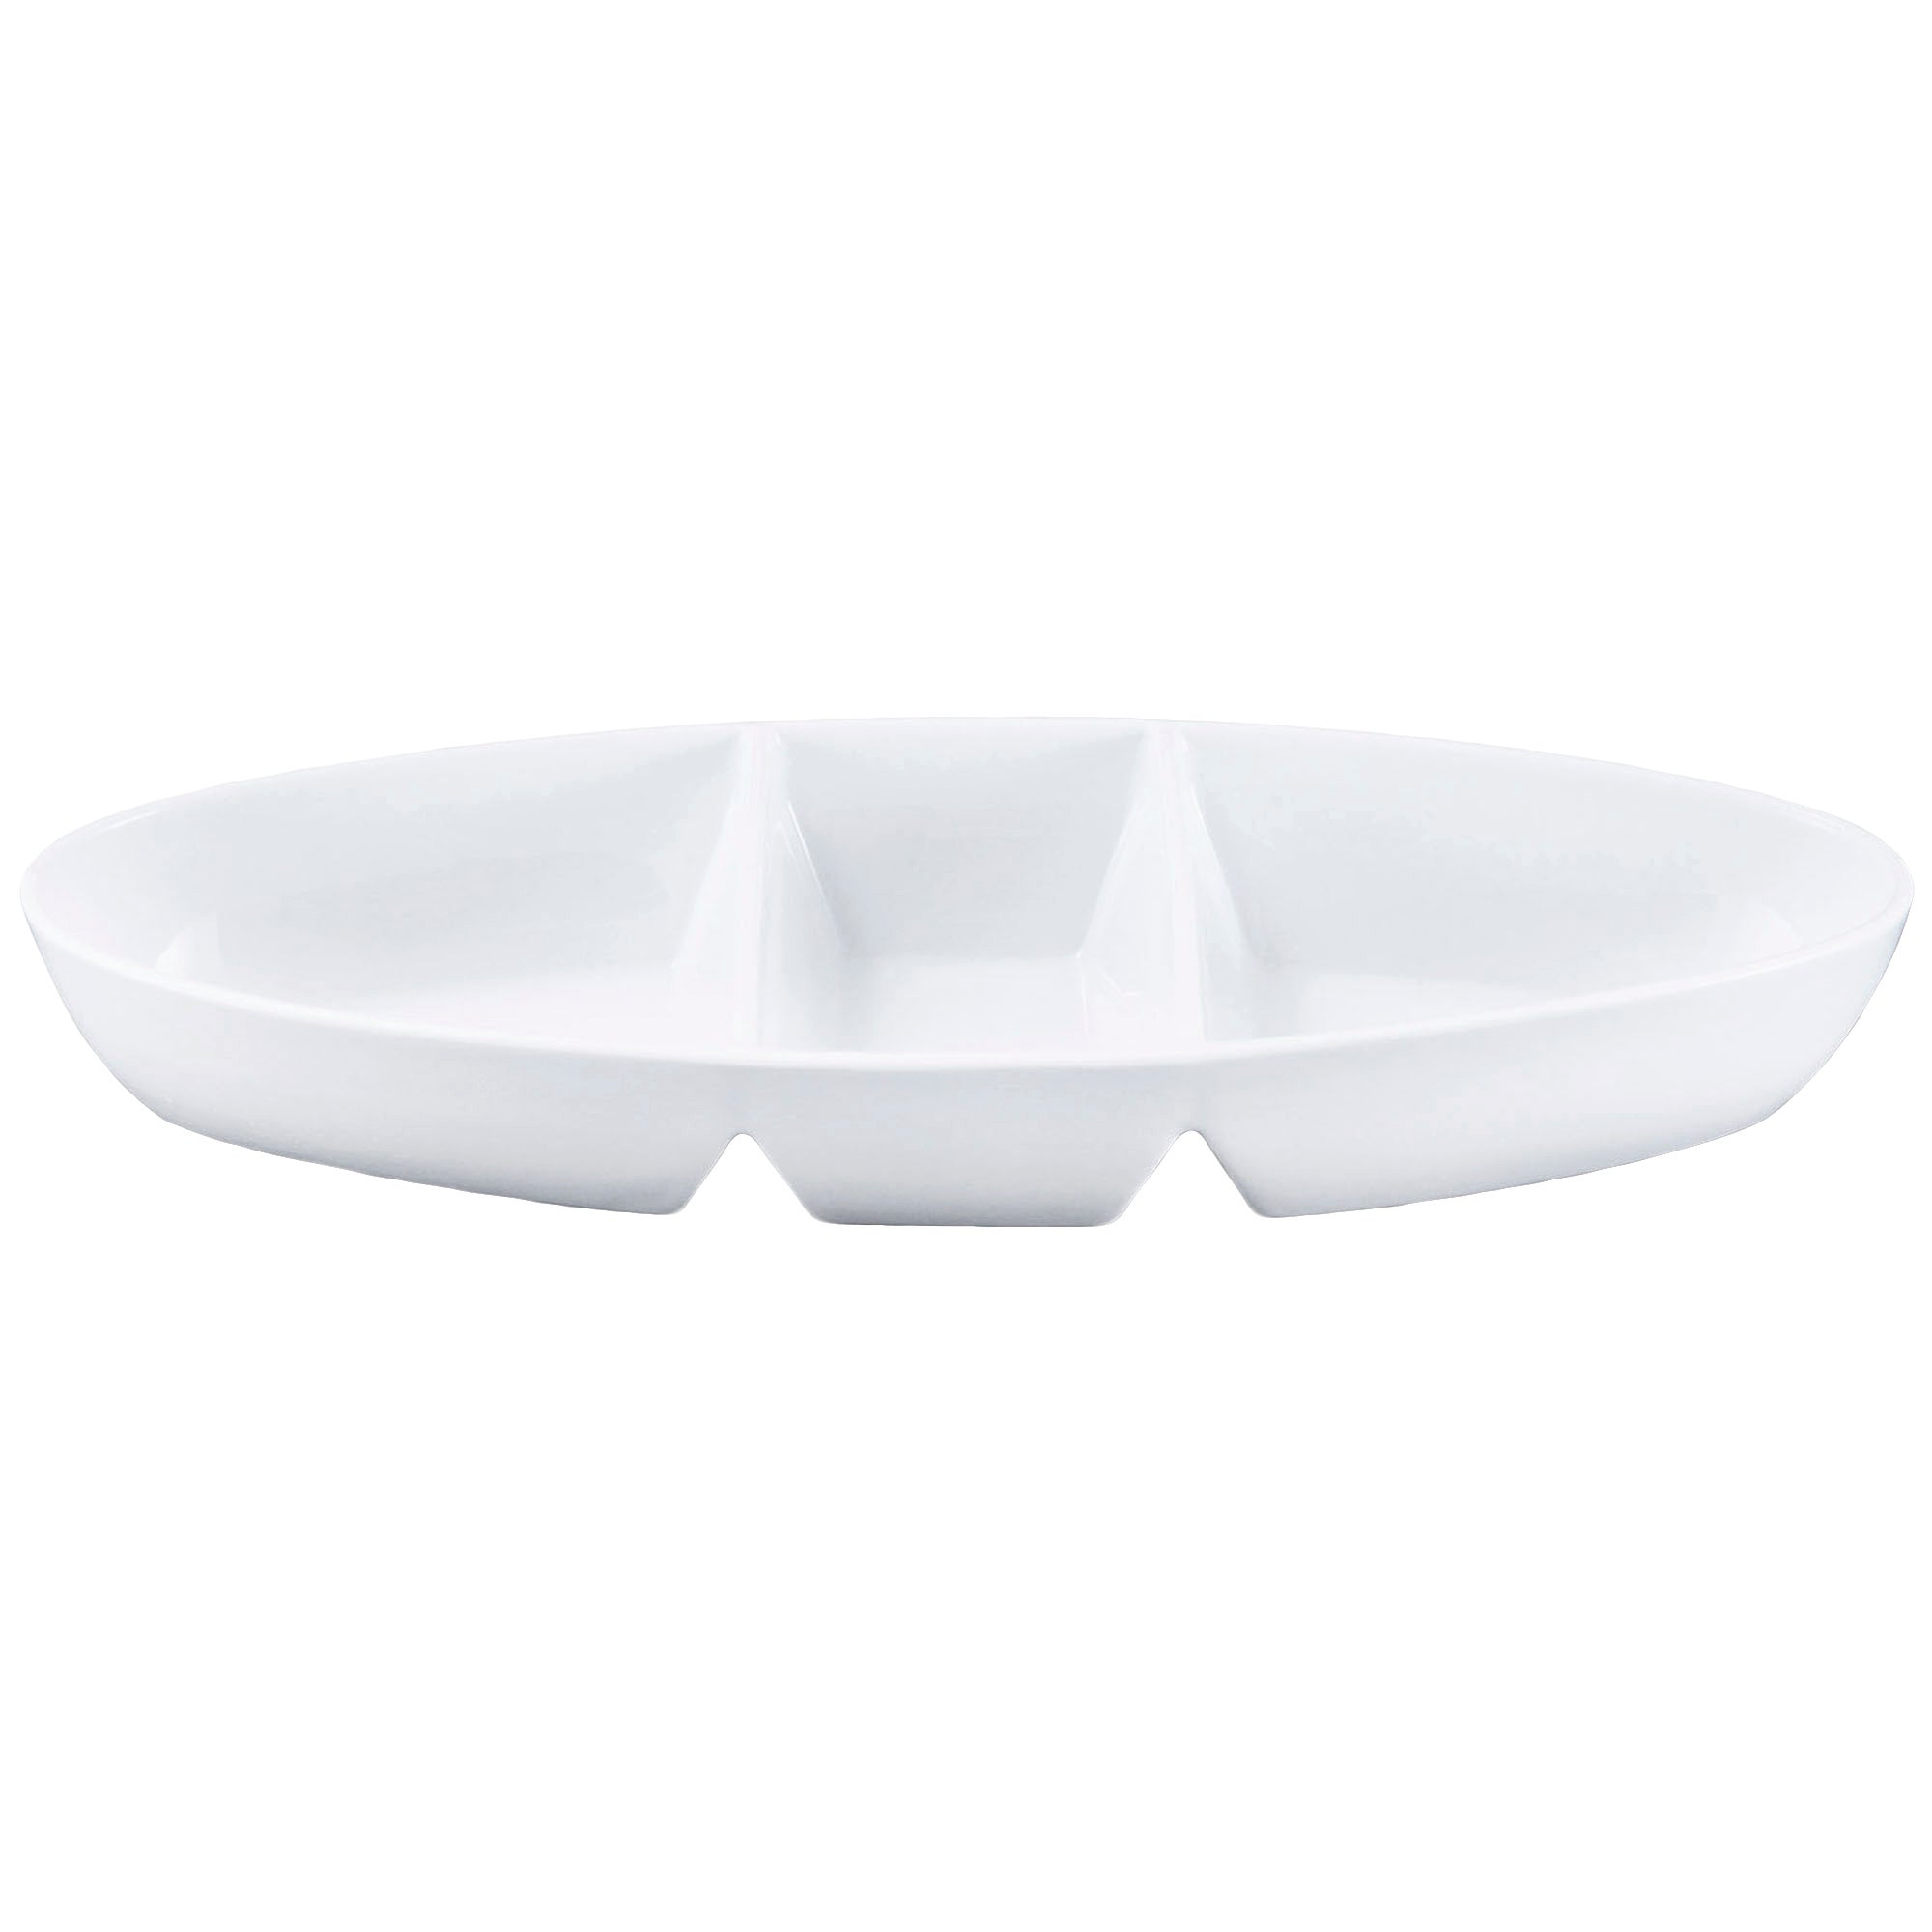 Purity Collection Oval Three Dip Platter